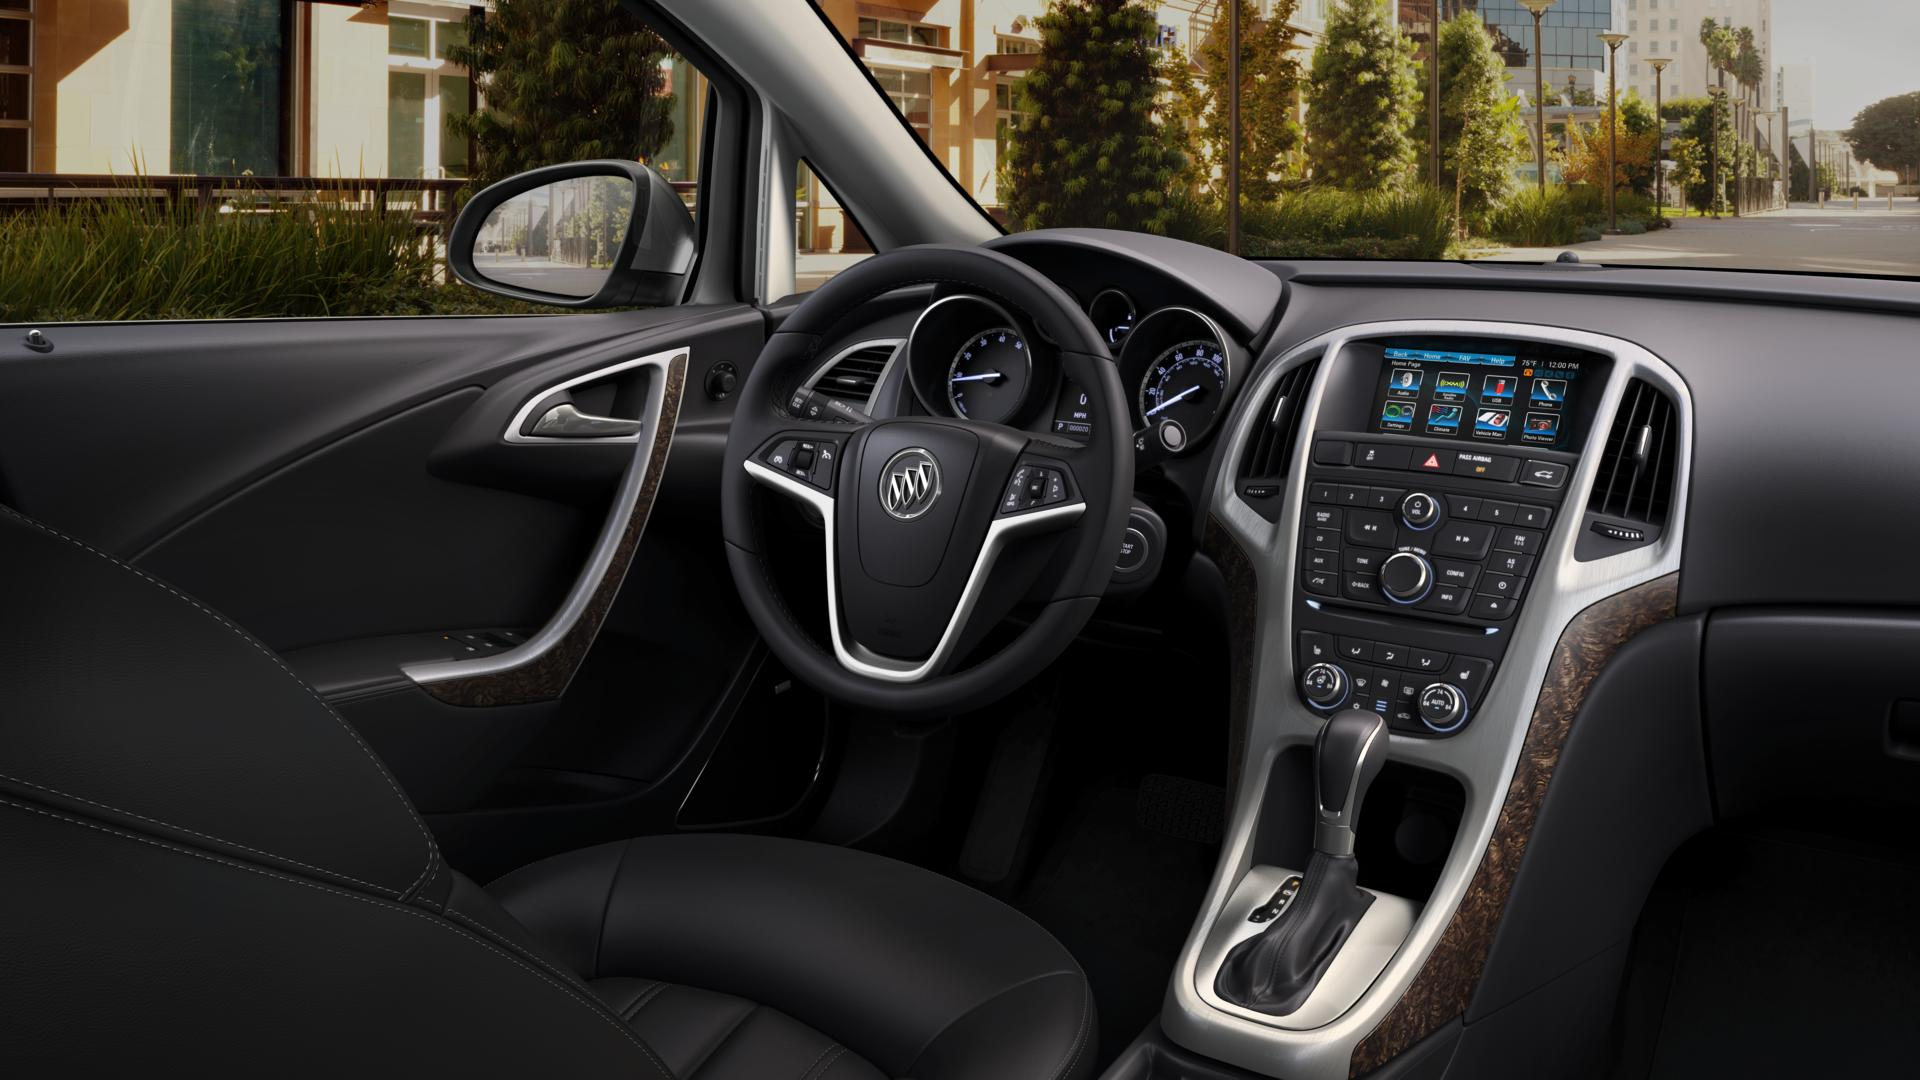 buick verano 2017 interior image gallery pictures photos. Black Bedroom Furniture Sets. Home Design Ideas